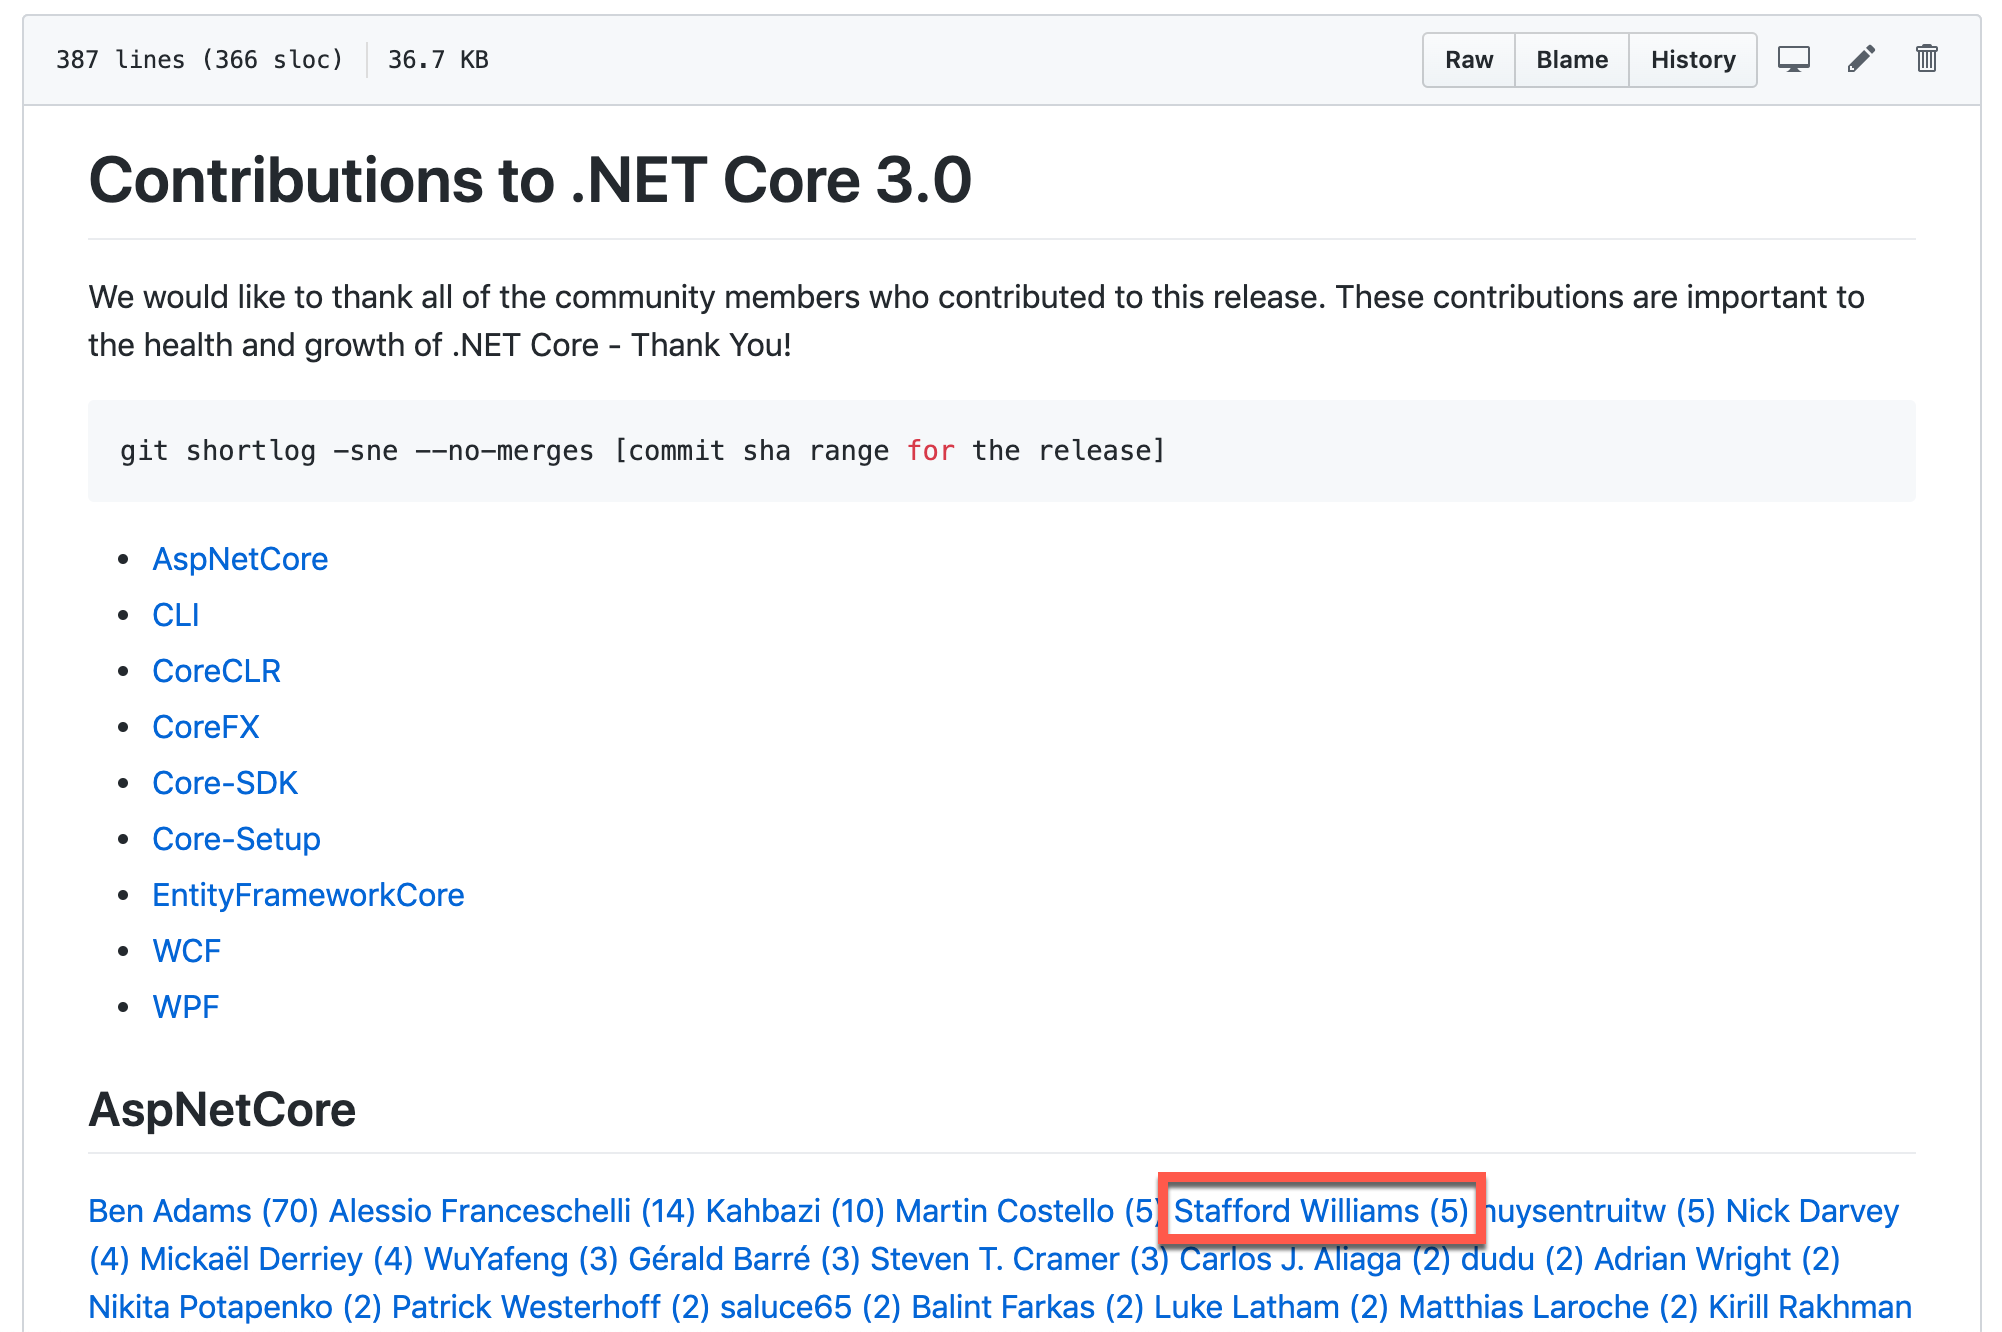 My contributions to .NET Core 3.0